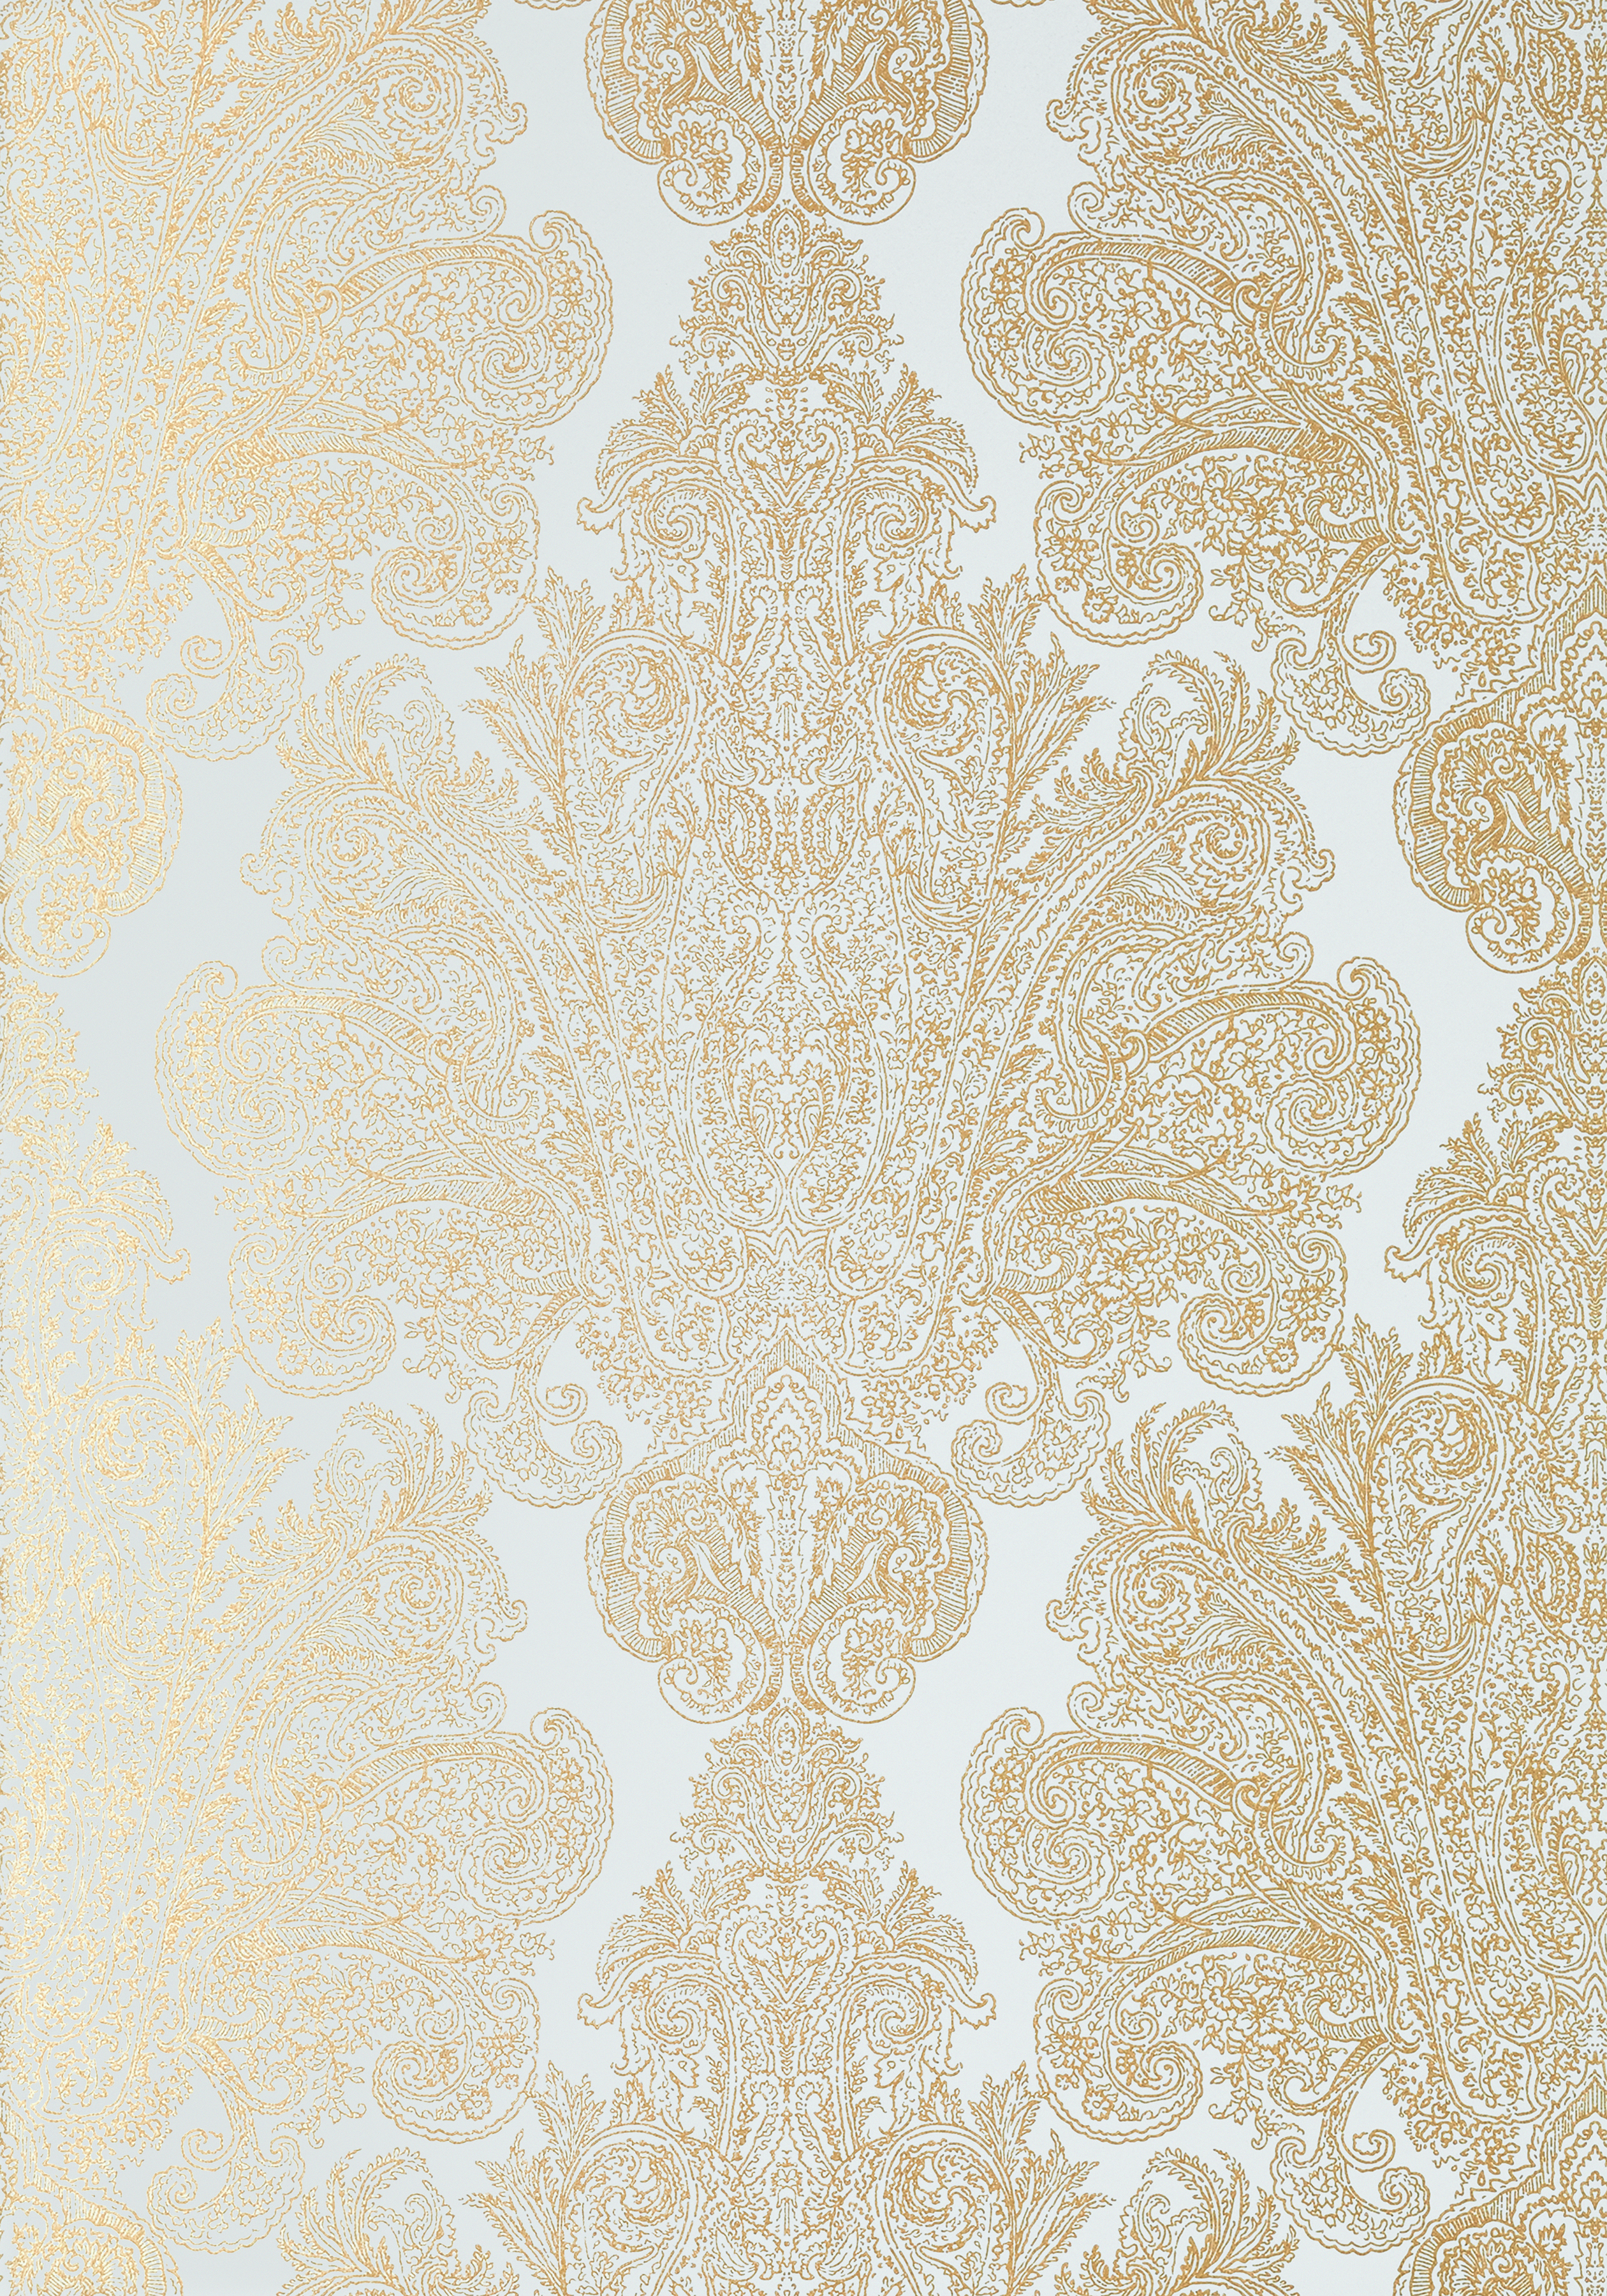 AUBURN-Metallic-Gold-on-Aqua-AT-Collection-Serenade-from-Anna-French-wallpaper-wp3003365